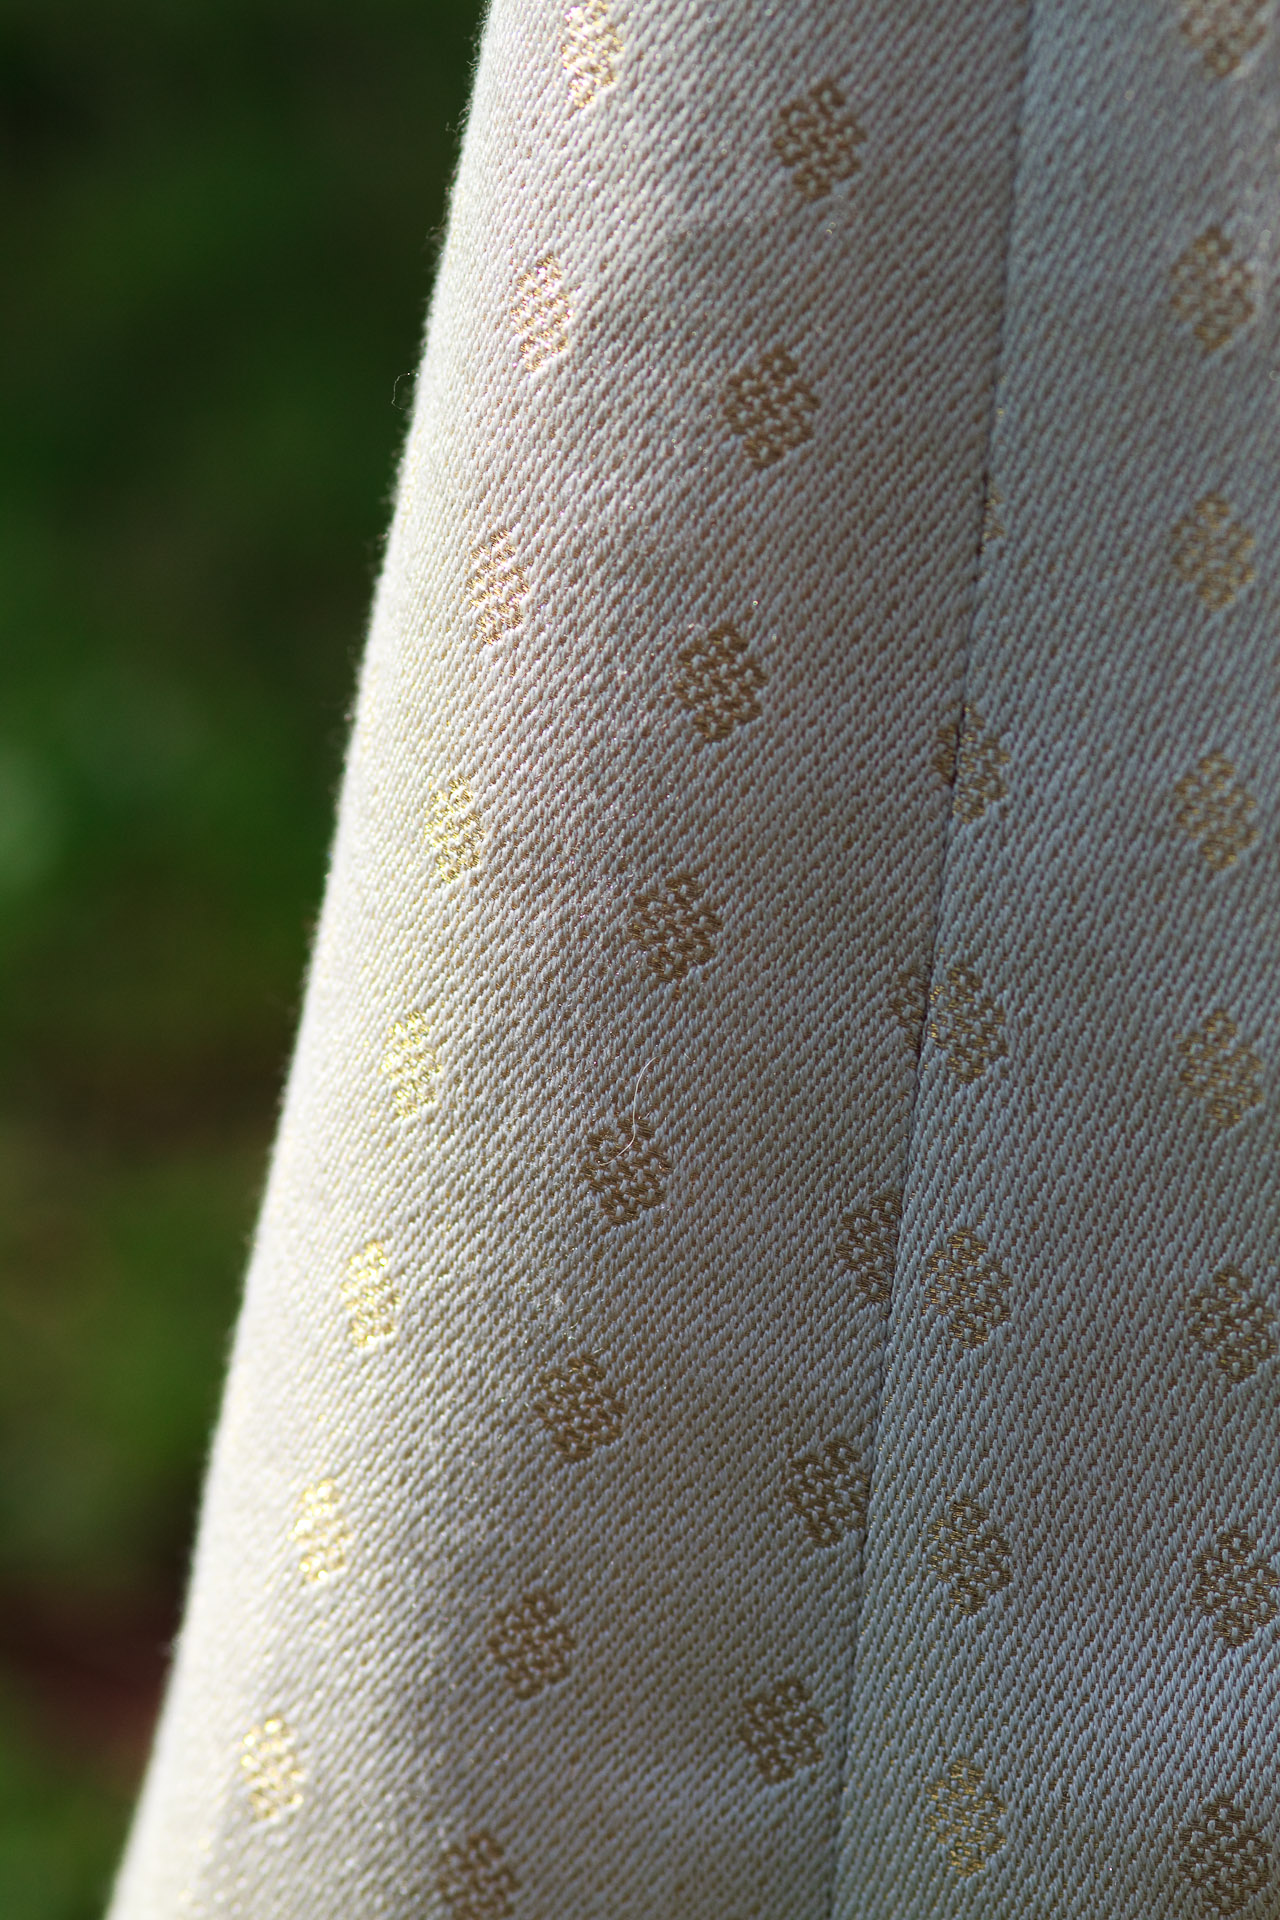 Closeup of pattern in handwoven wedding dress